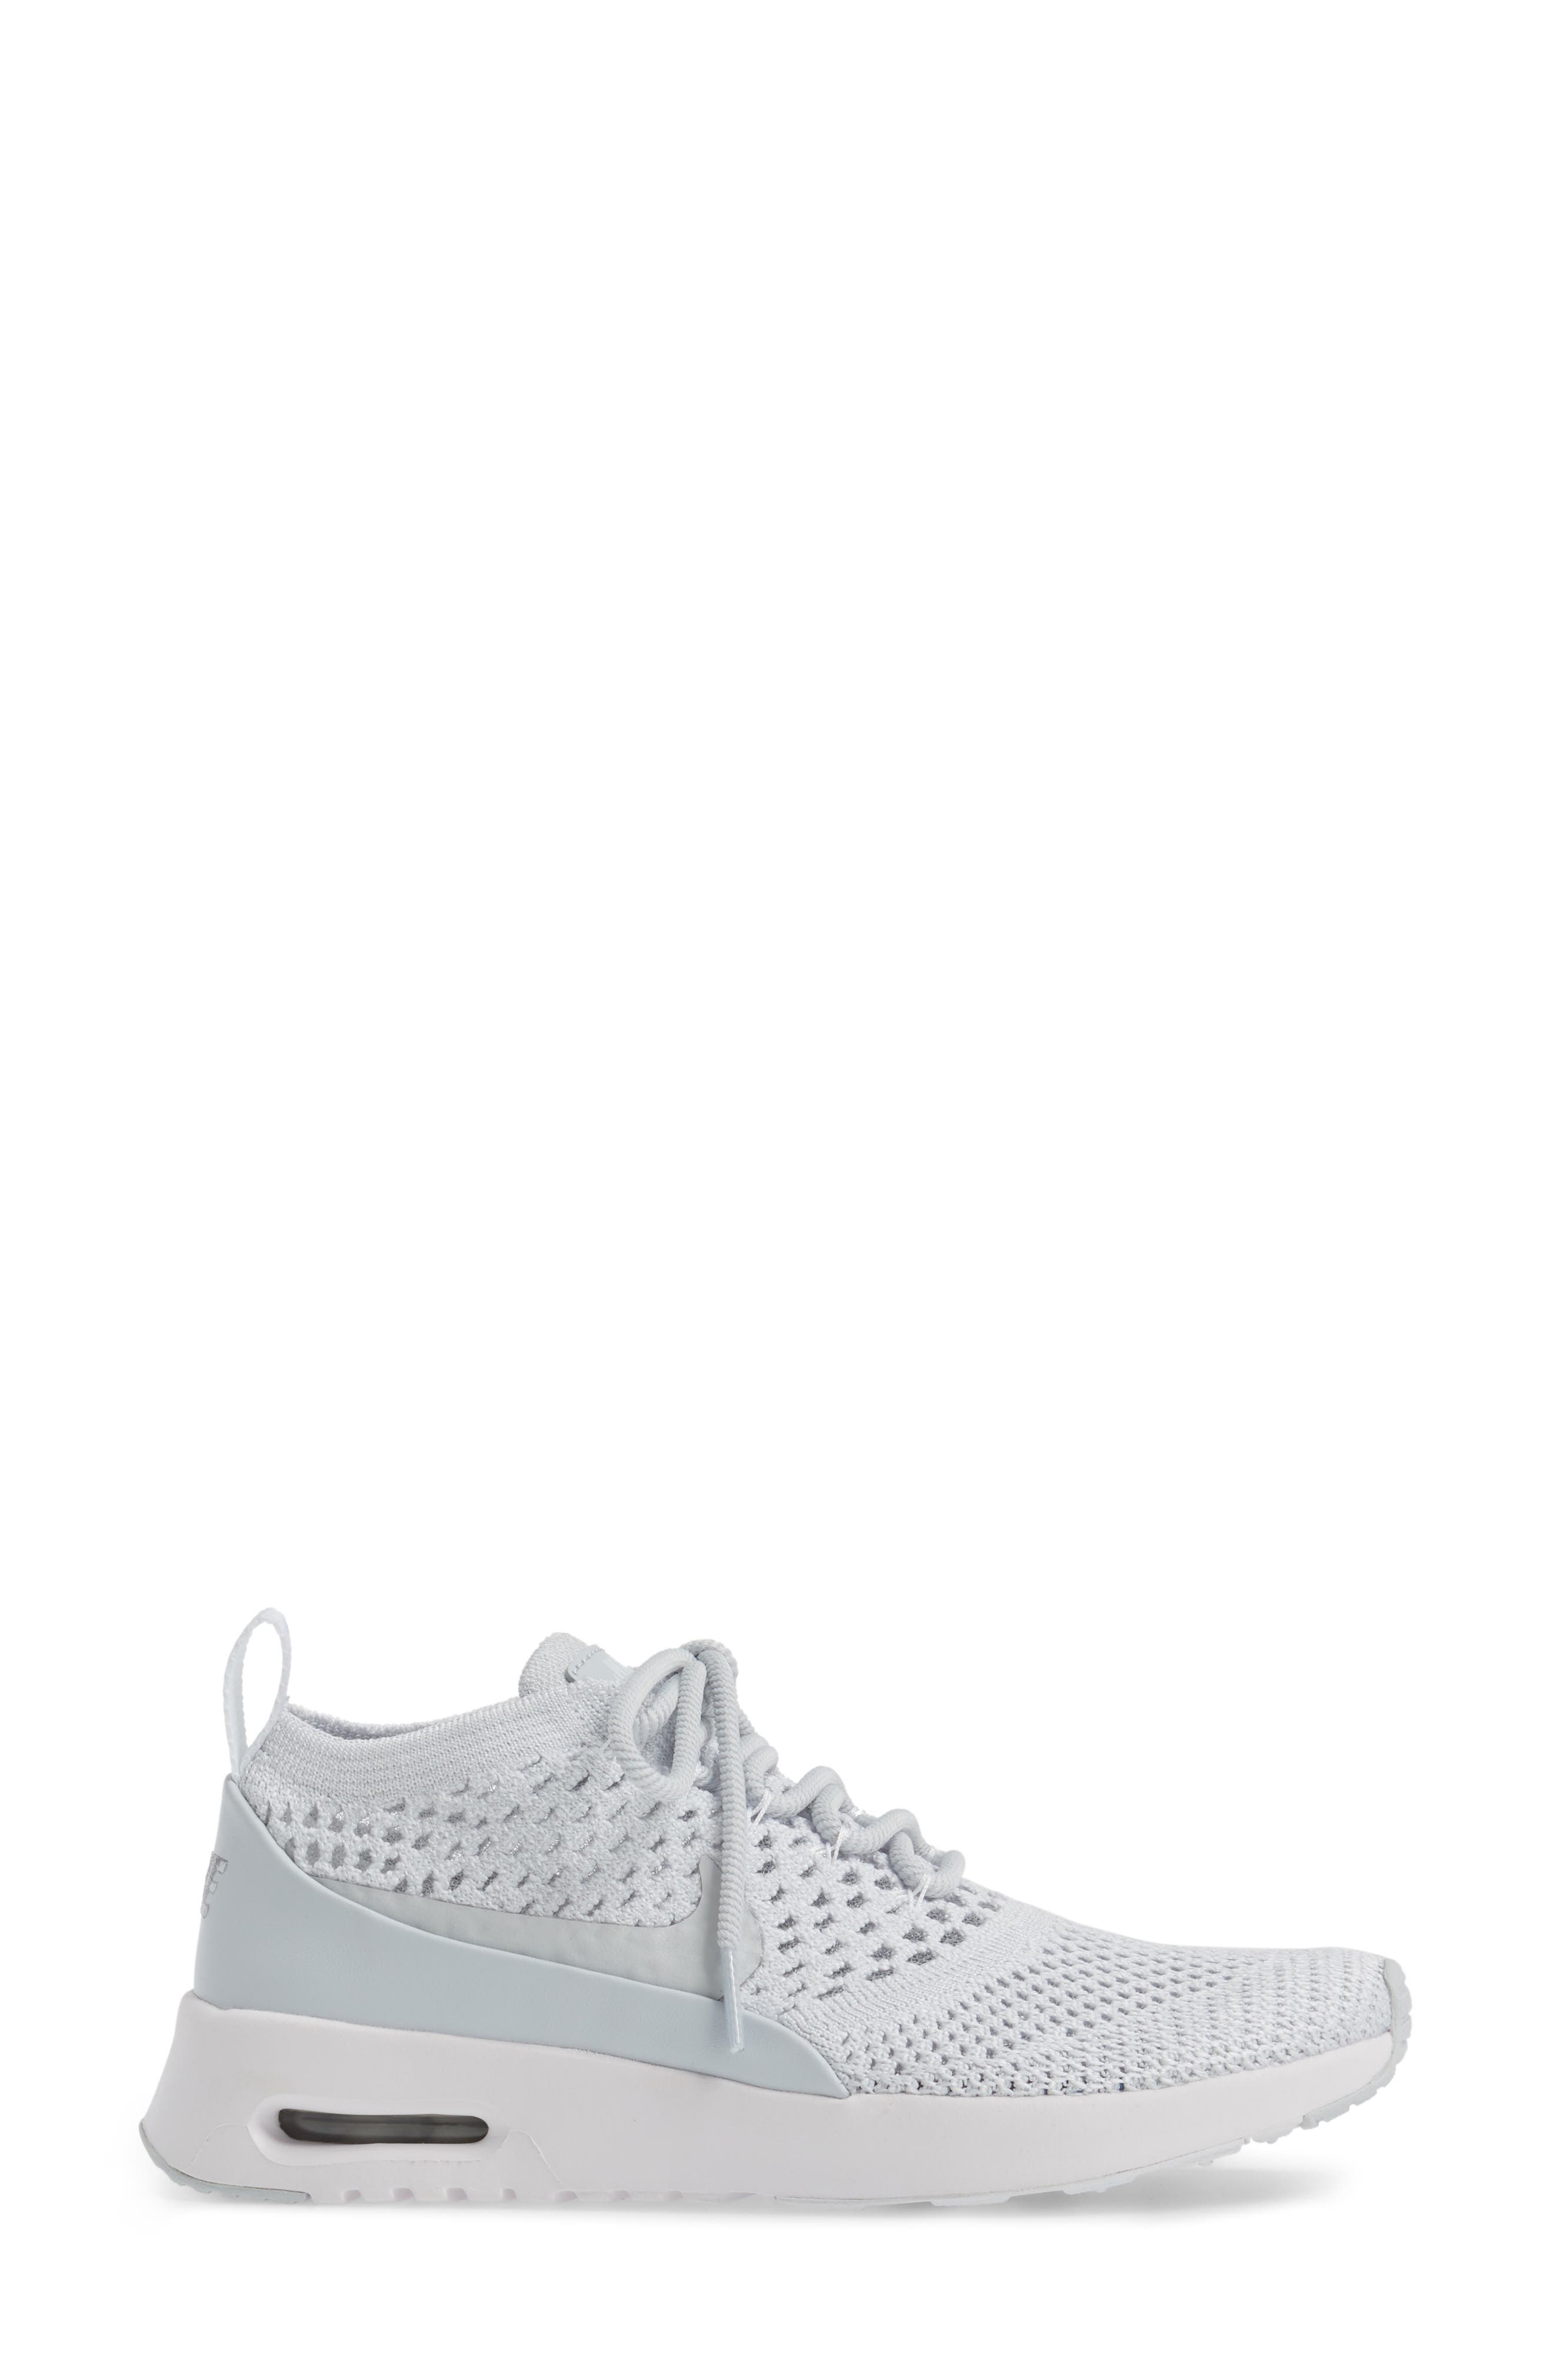 Air Max Thea Ultra Flyknit Sneaker,                             Alternate thumbnail 32, color,